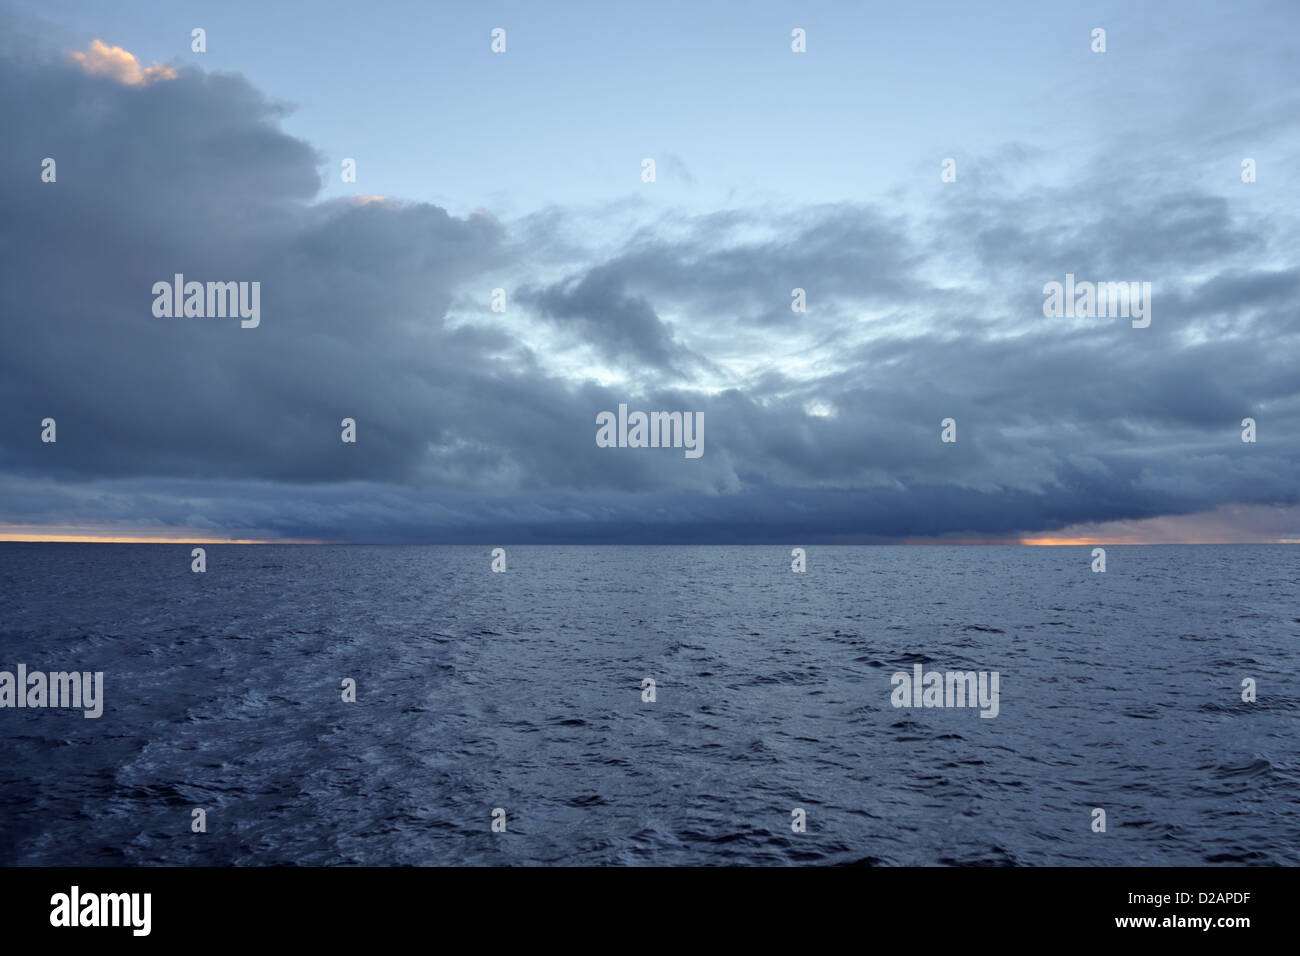 Squall line clouds ahead seen from a yacht sailing offshore in the South Pacific - Stock Image